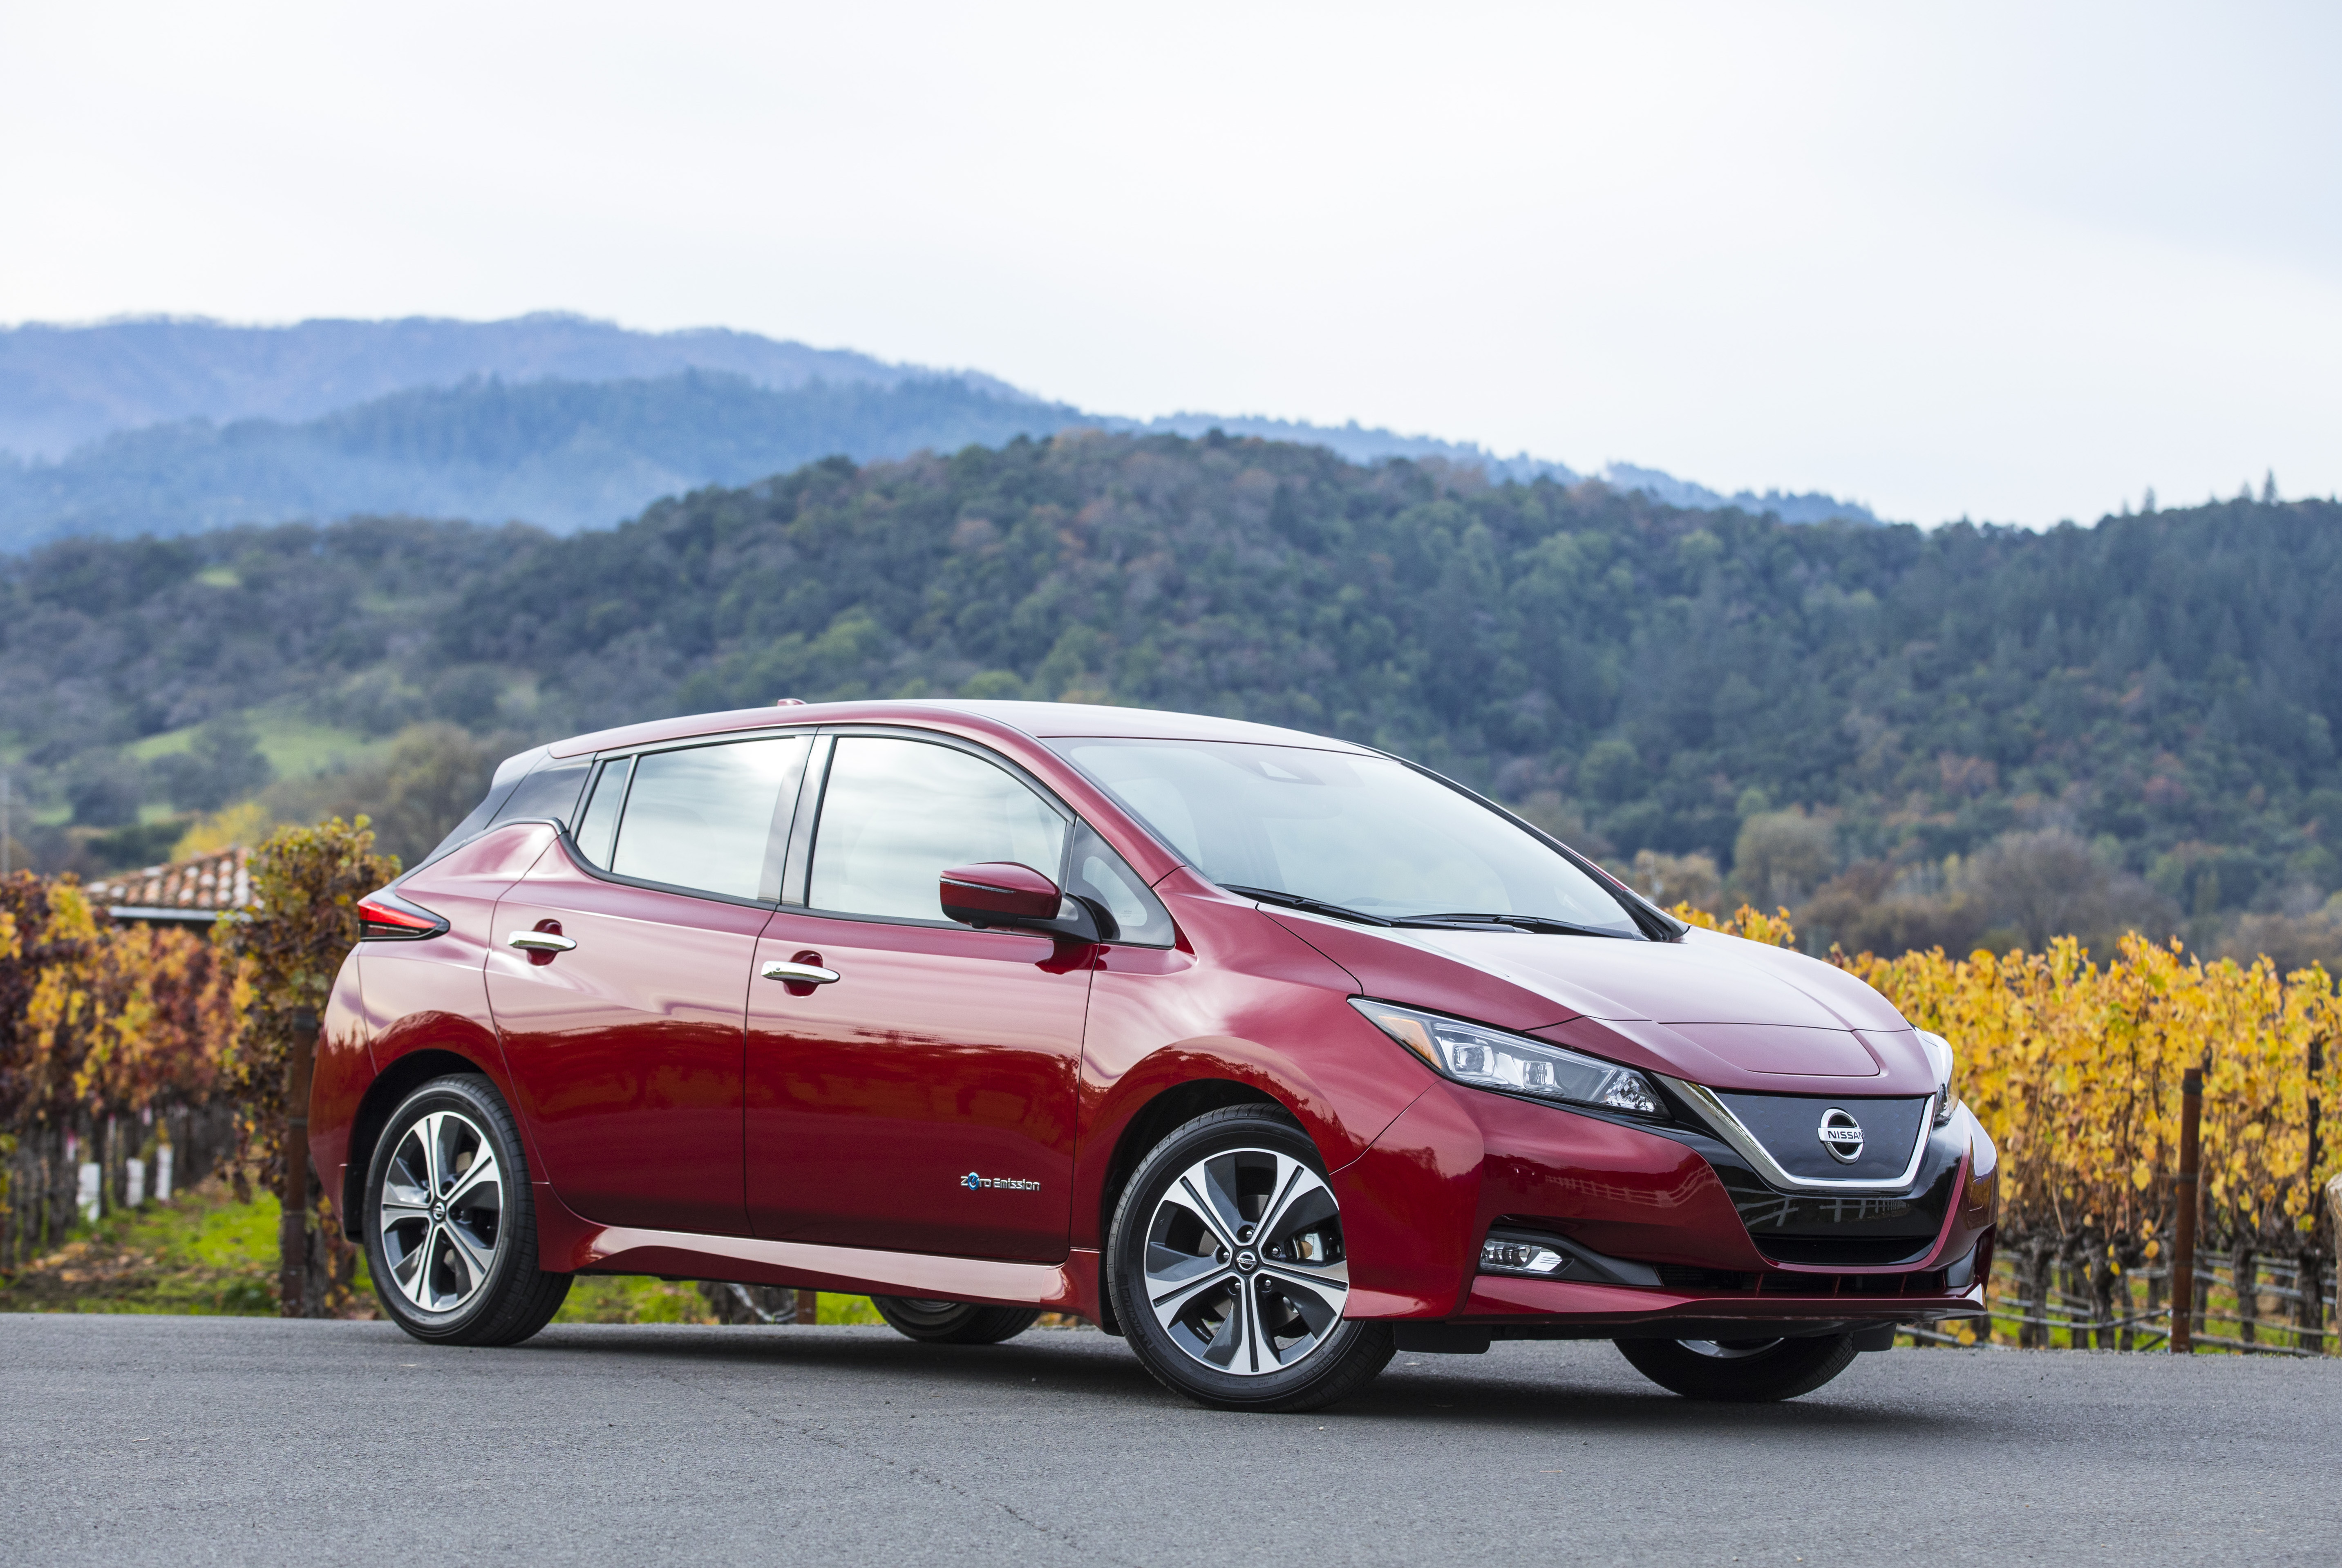 2018 Nissan Leaf in a vineyard